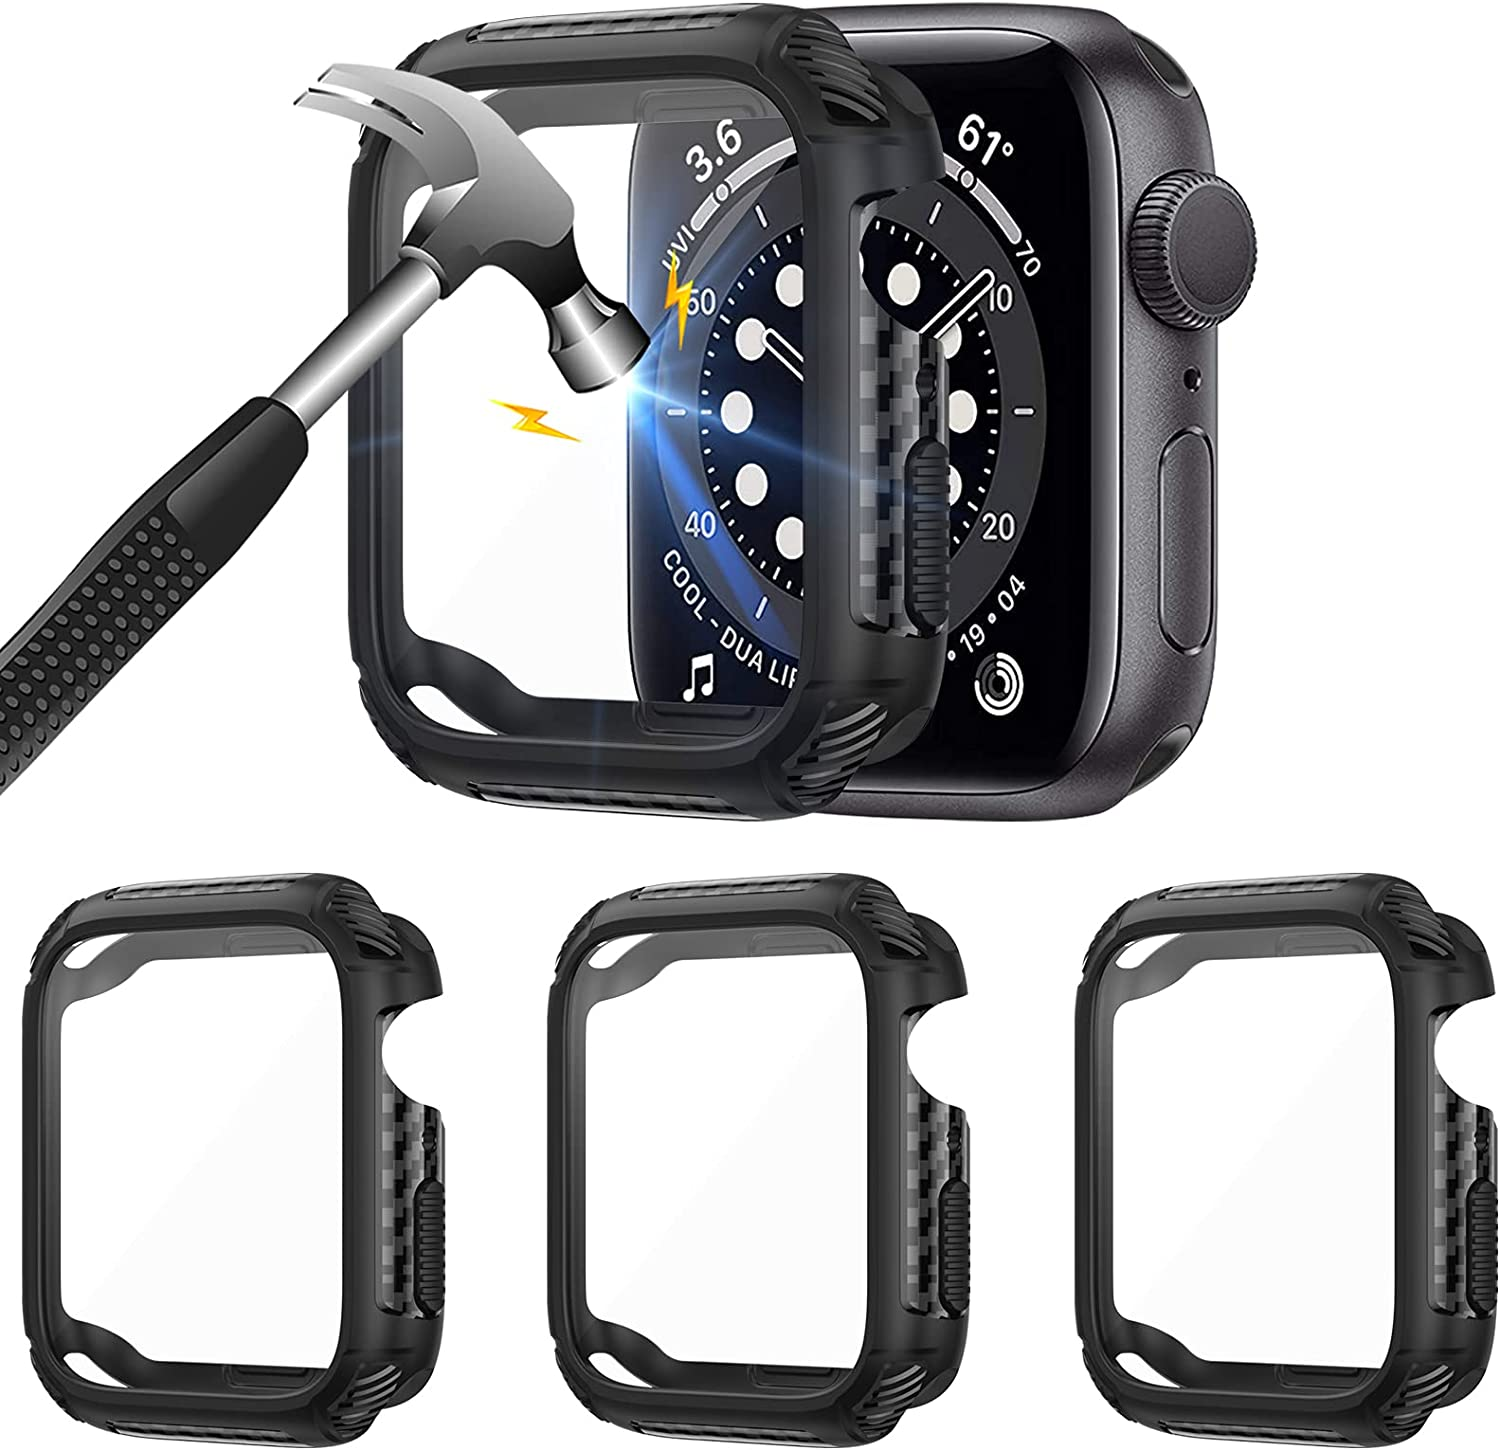 Liwin 3-Pack Case Compatible with Apple Watch SE/Series 6 / Series 5 / Series 4 44mm with Tempered Glass Screen Protector, Full Protective Cover TPU Bumper Accessories Compatible with iWatch 44mm